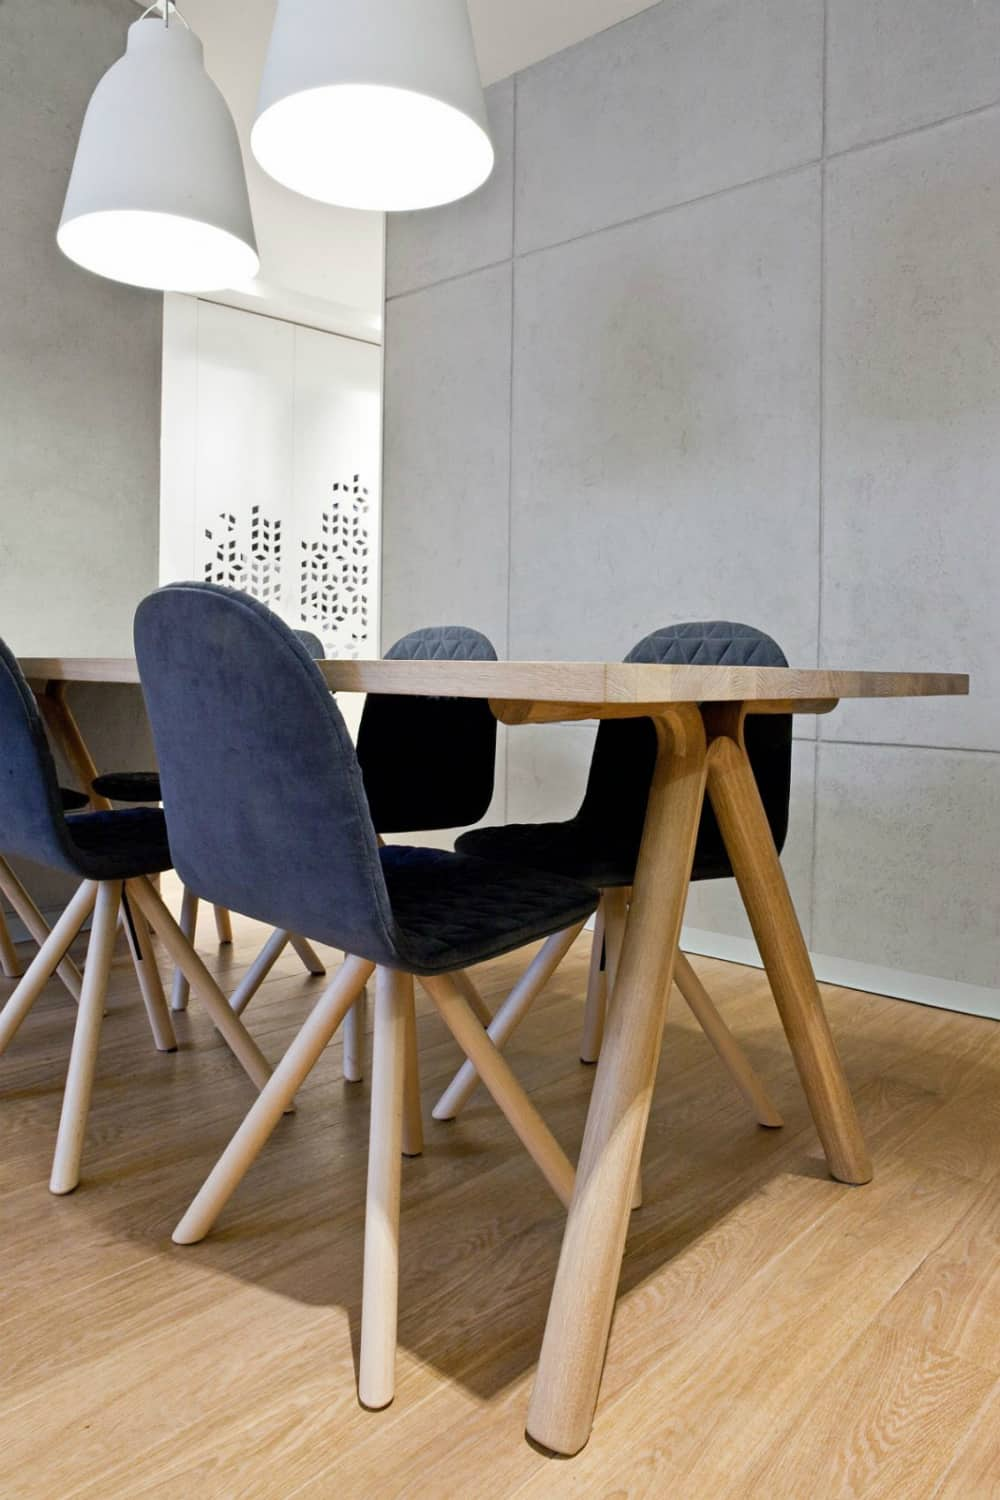 Dining set is positively mid-century modern